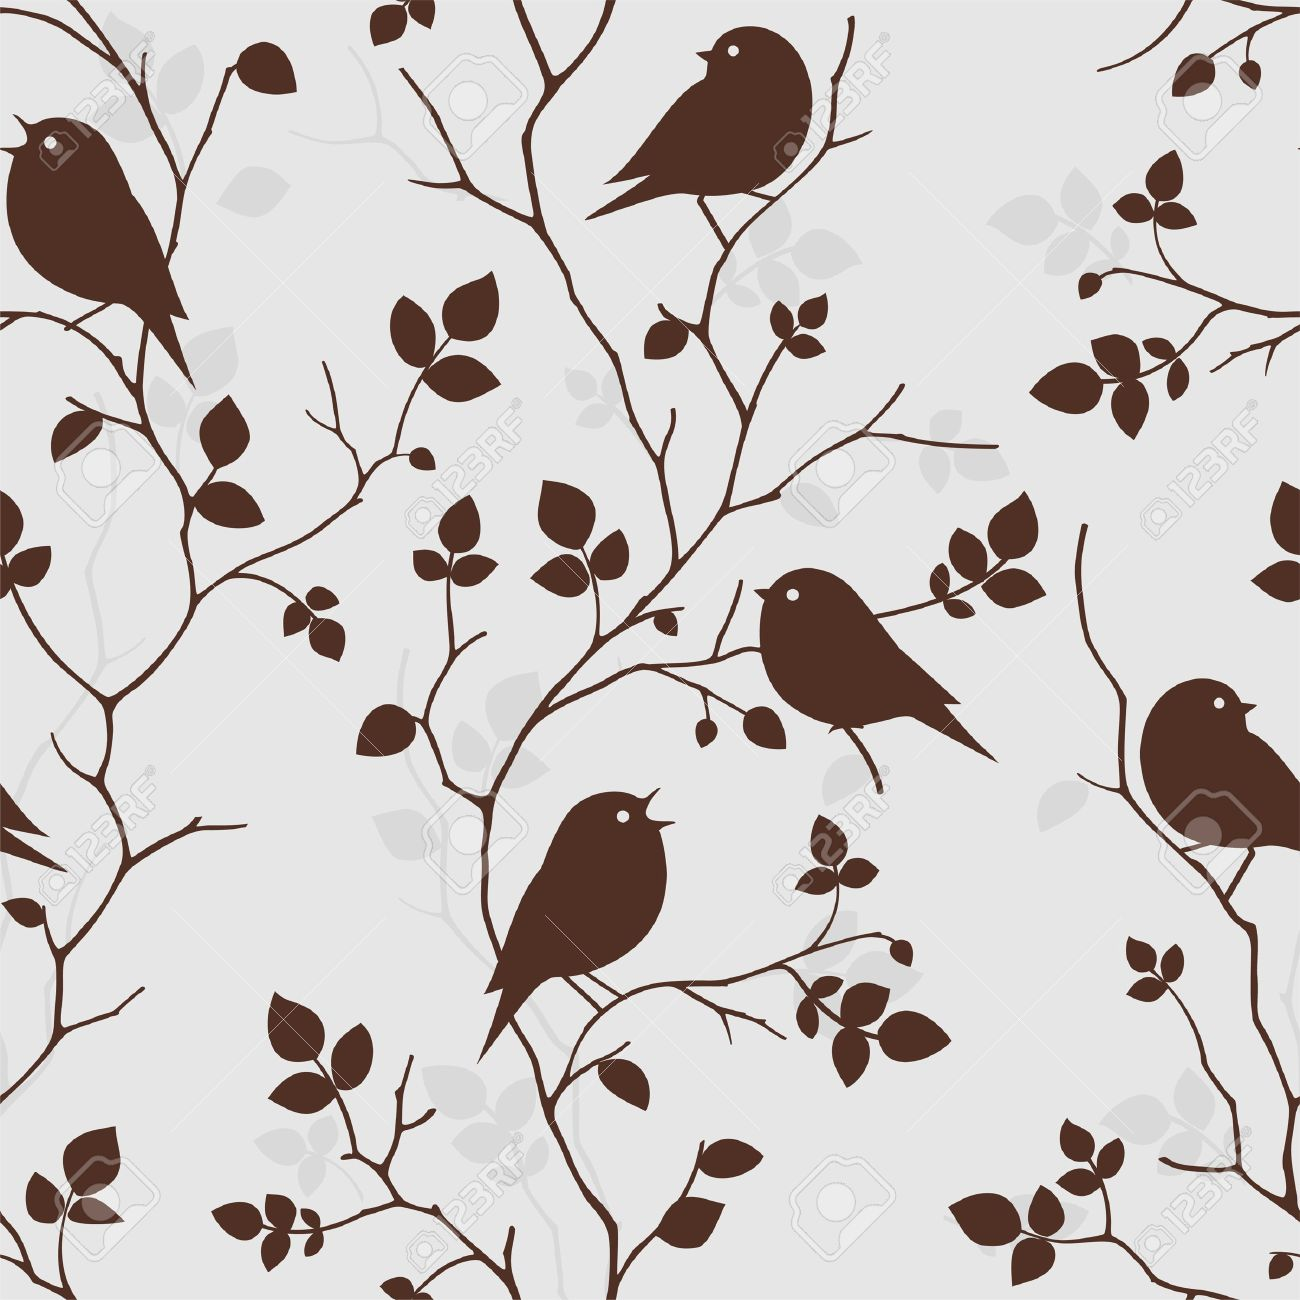 Wallpaper With Birds Seamless Pattern Royalty Free Cliparts Vectors